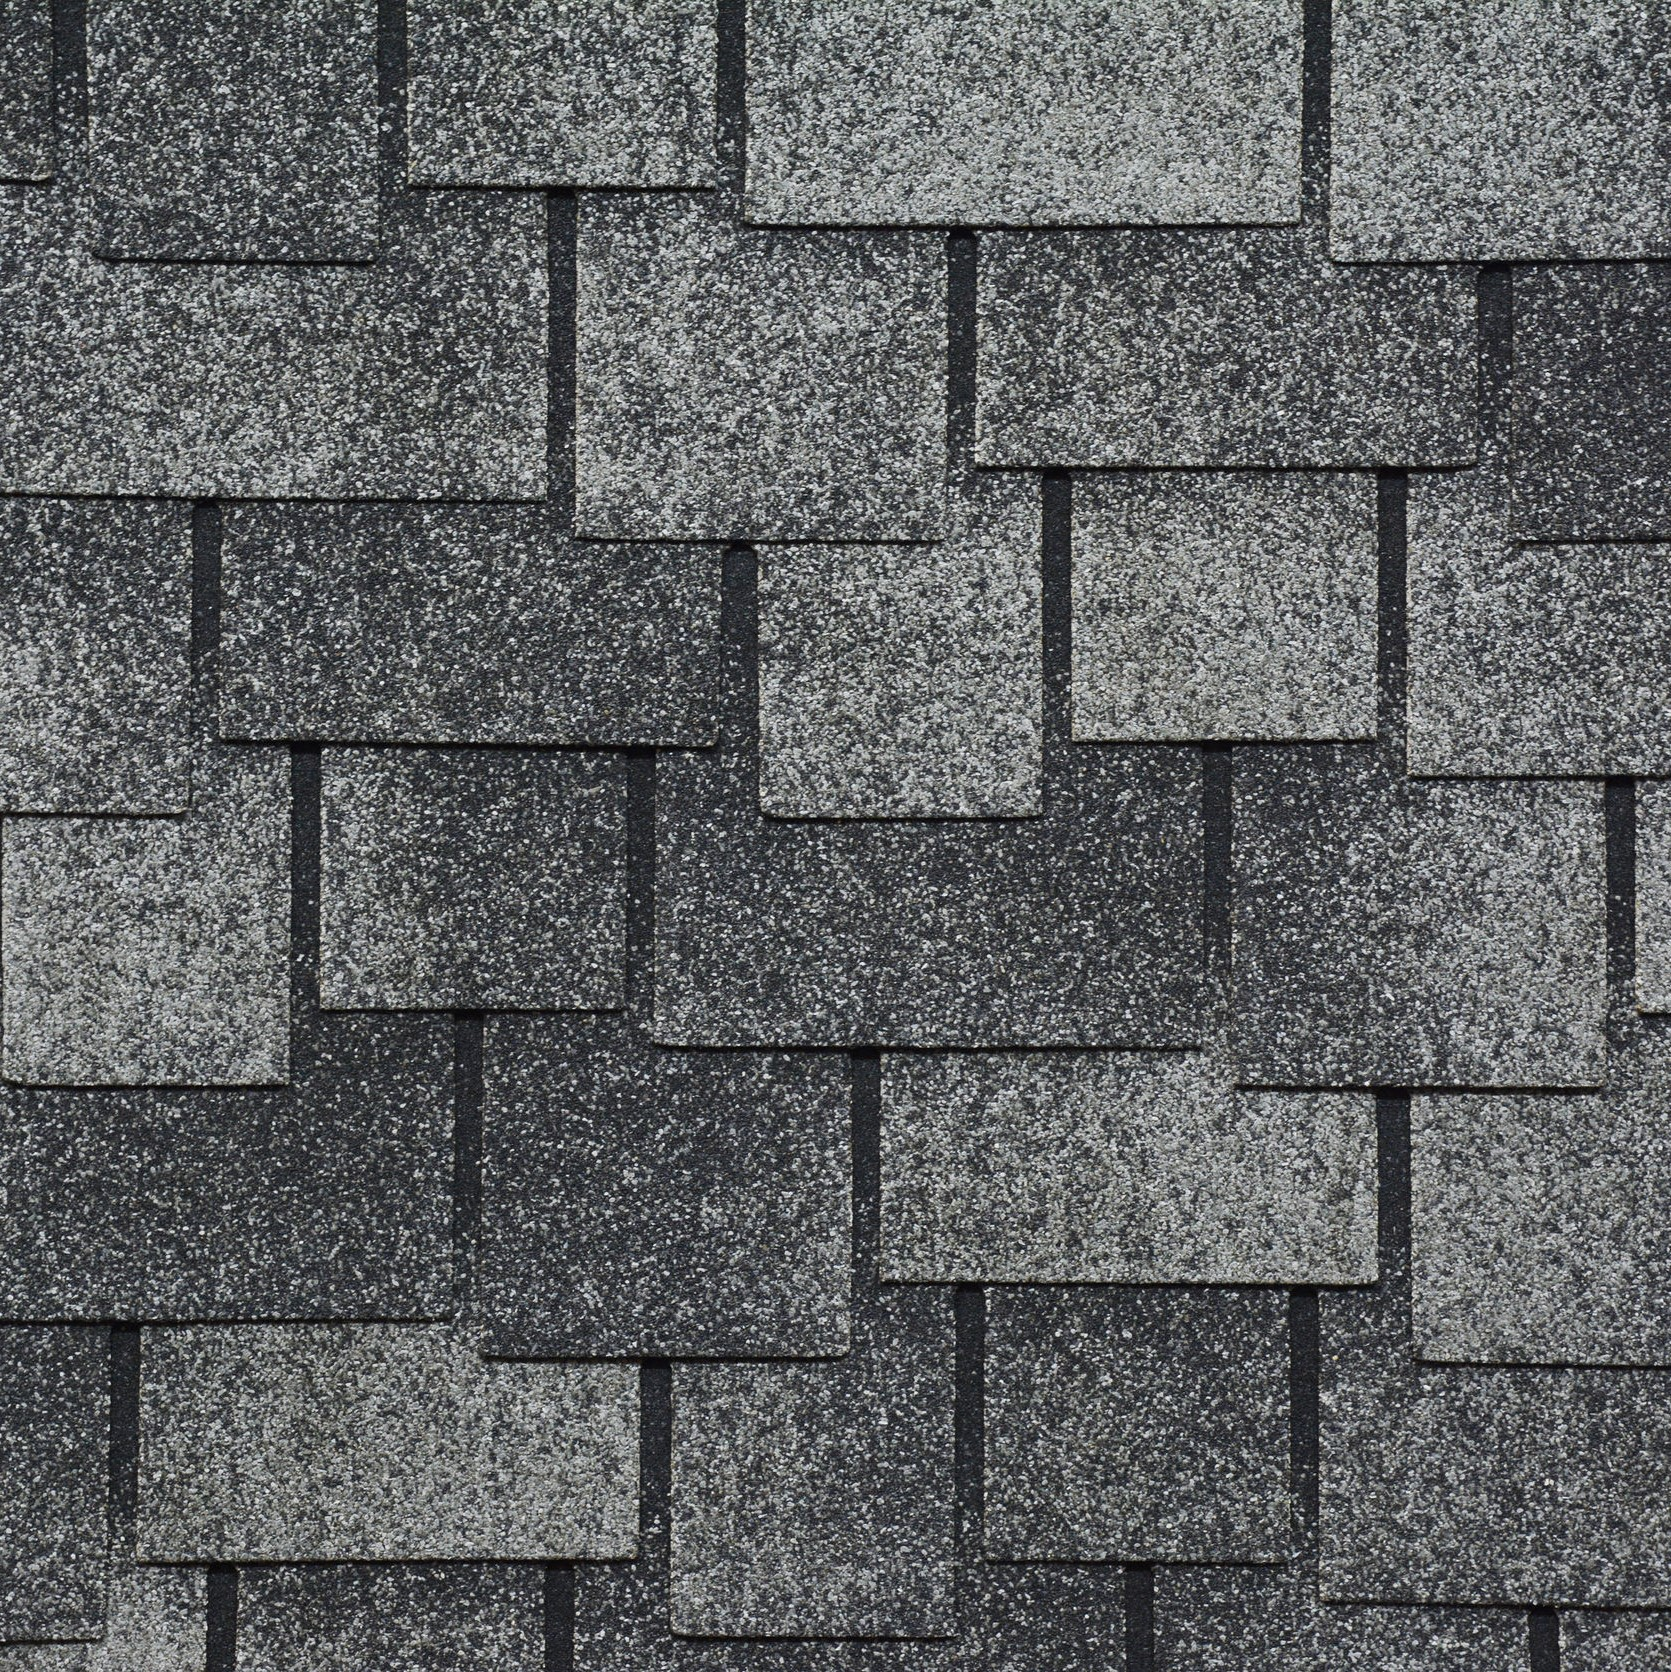 A close up picture of asphalt roofing shingles.